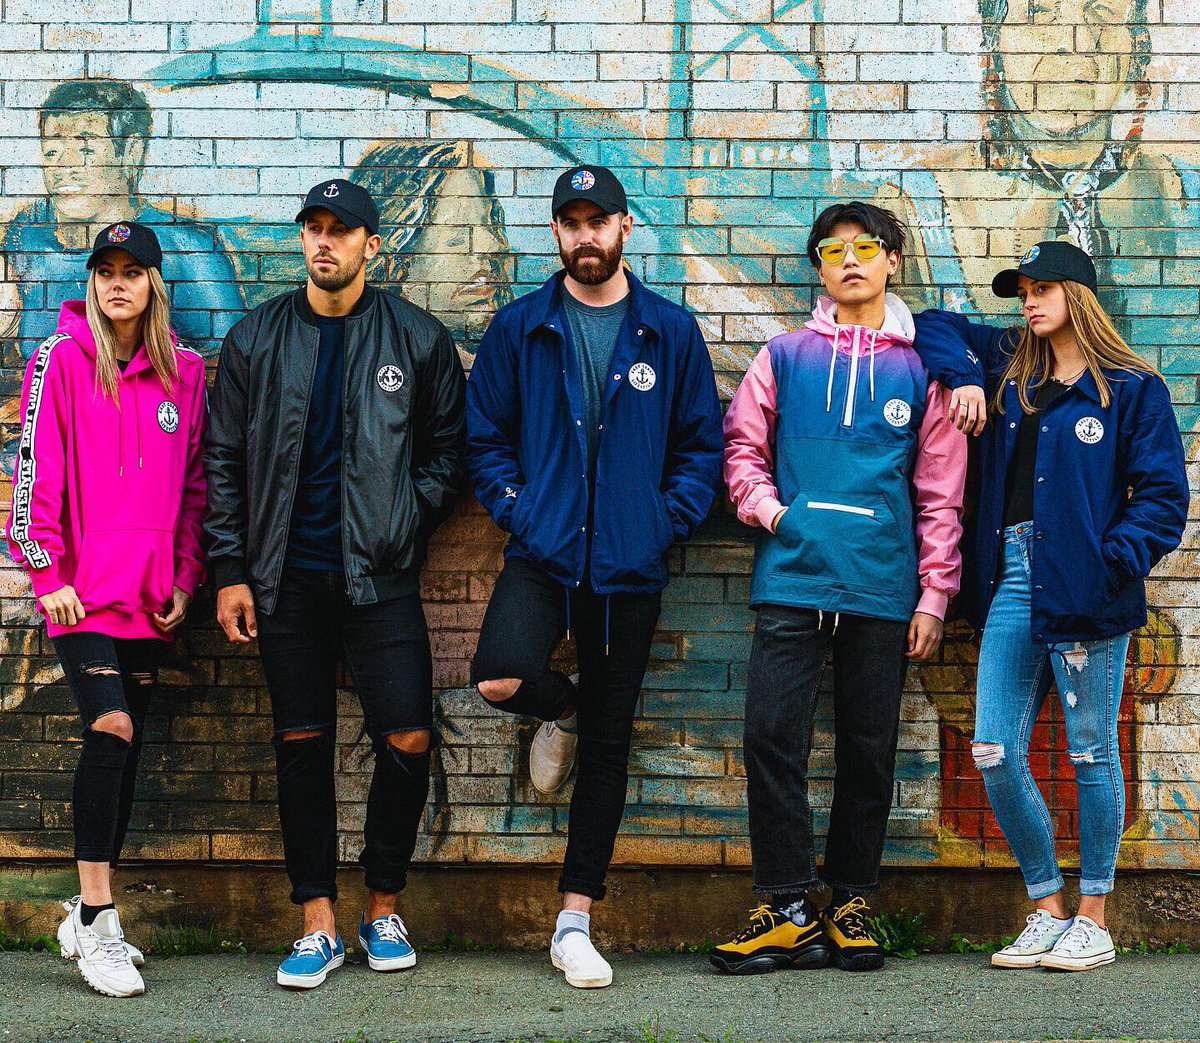 Our Fall Collection is now available online & in stores!! NEW Jackets, Hoodies & Headwear   http:// EastCoastLifestyle.com       RETWEET to be entered to win a jacket of choice from the collection!  Stay warm this fall & rep your coast  <br>http://pic.twitter.com/SI8bGZeS9A